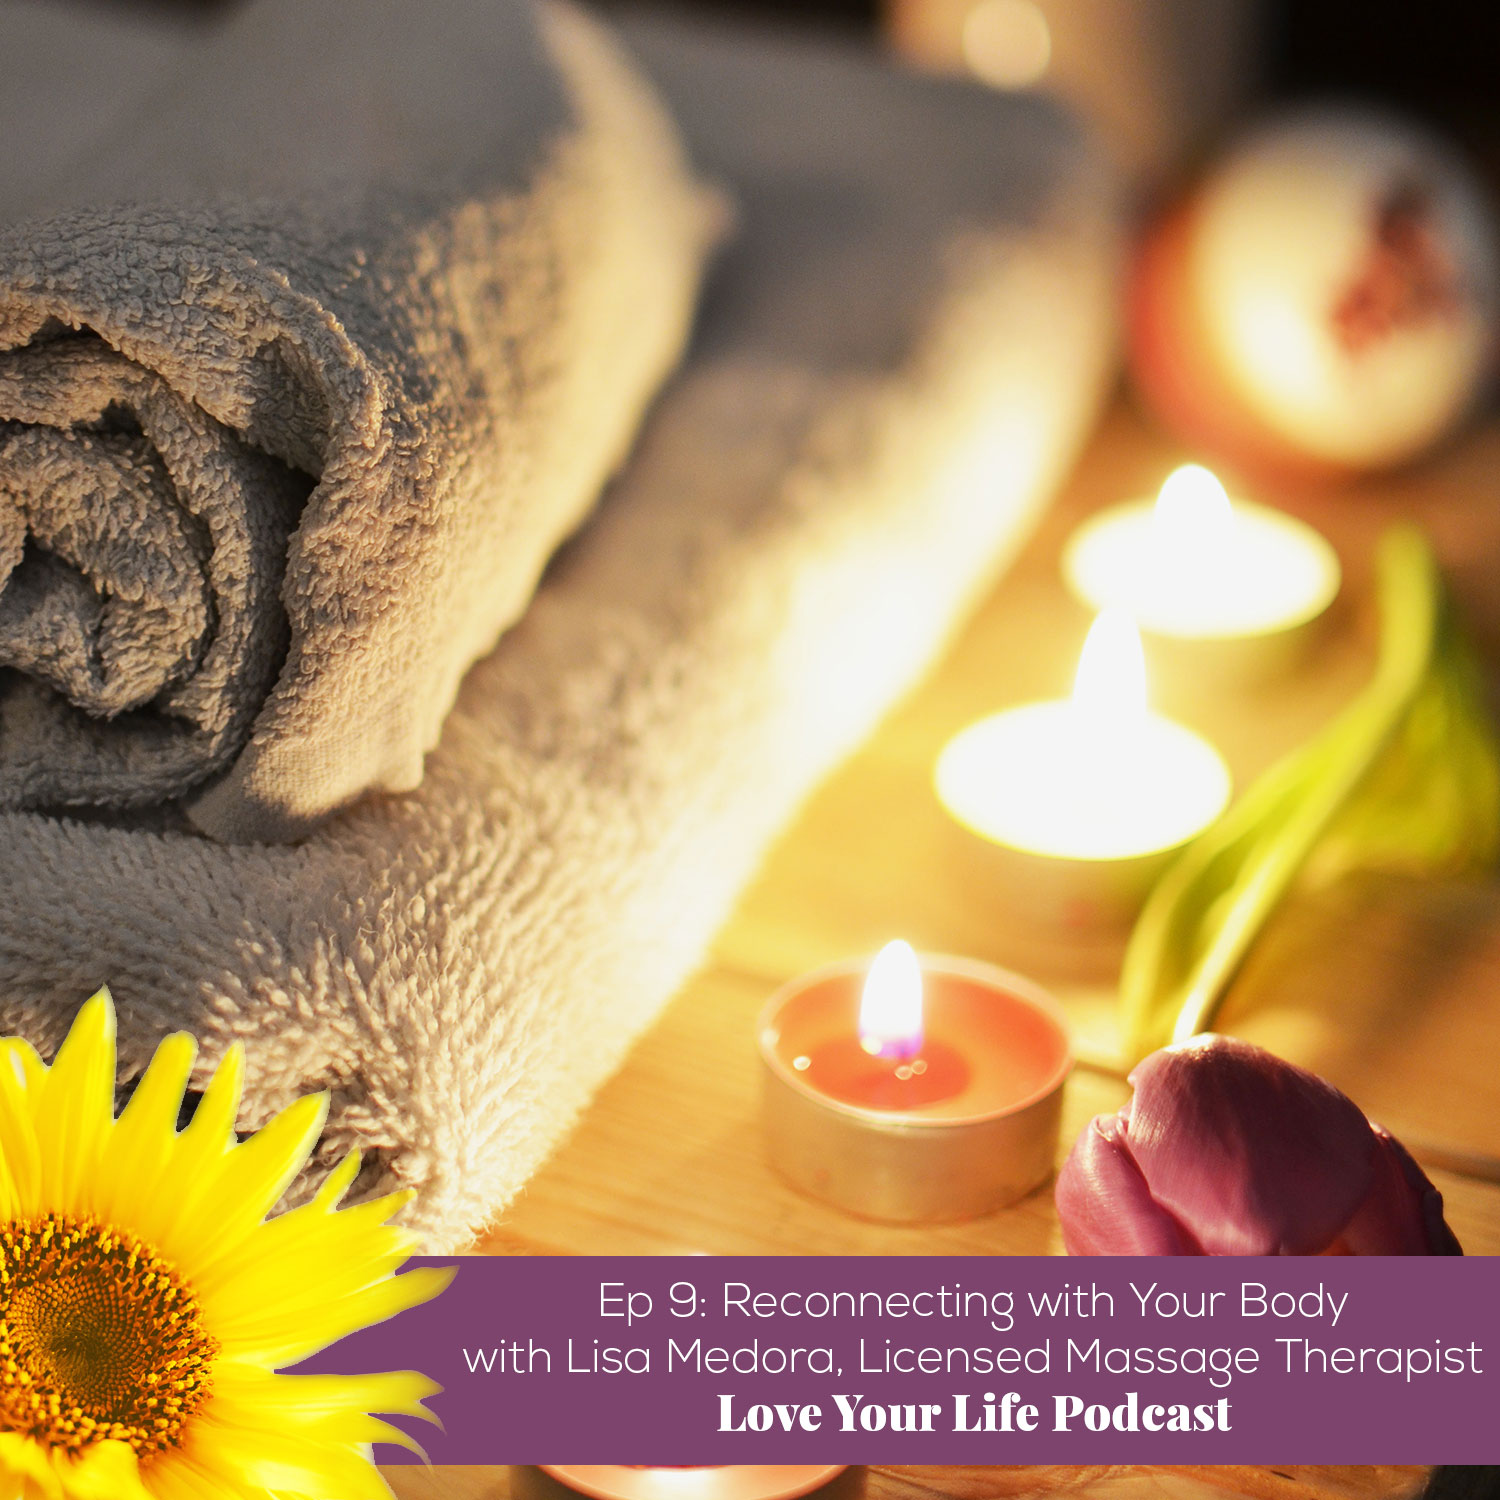 Lisa Medora, Licensed Massage Therapist | Love Your Life Podcast